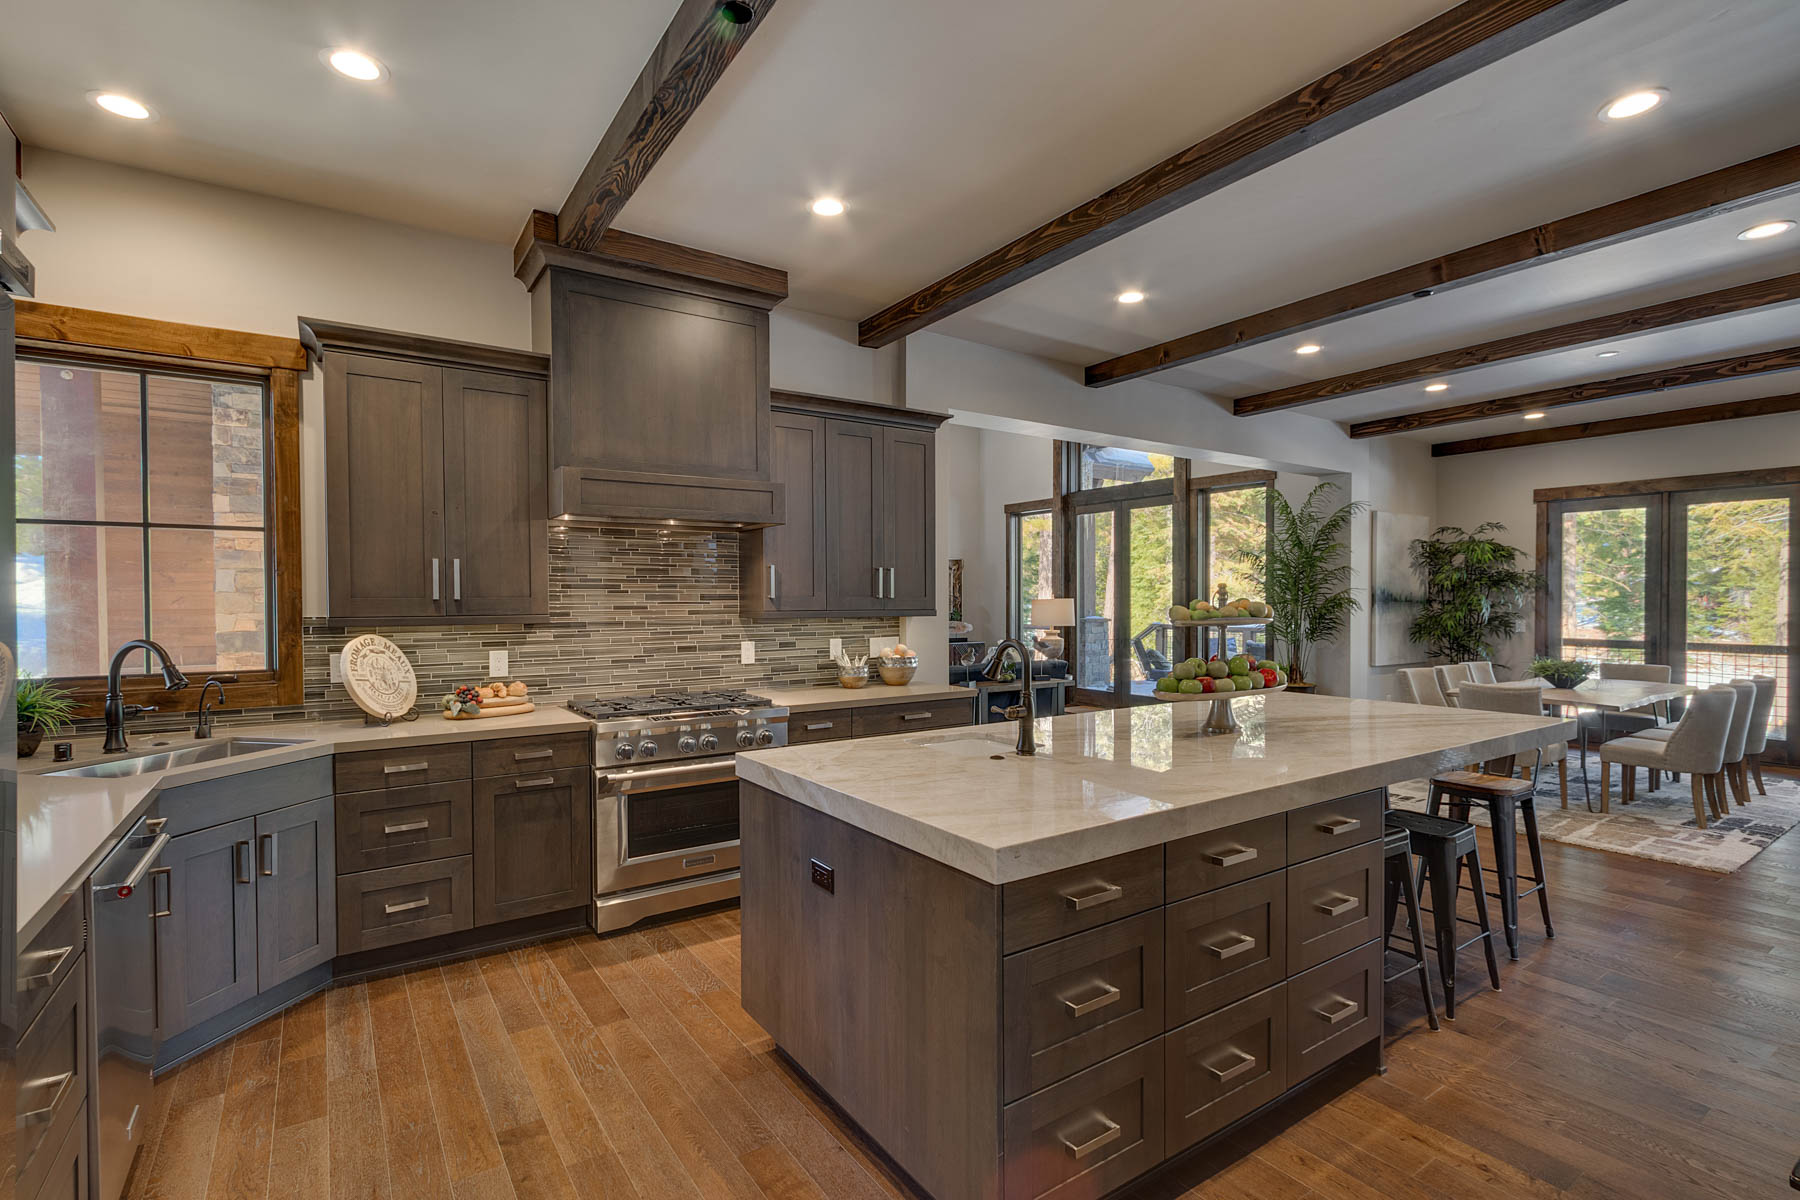 Additional photo for property listing at 9364 Nine Bark Road, Truckee, Ca 96161 9364 Nine Bark Road Truckee, California 96161 United States